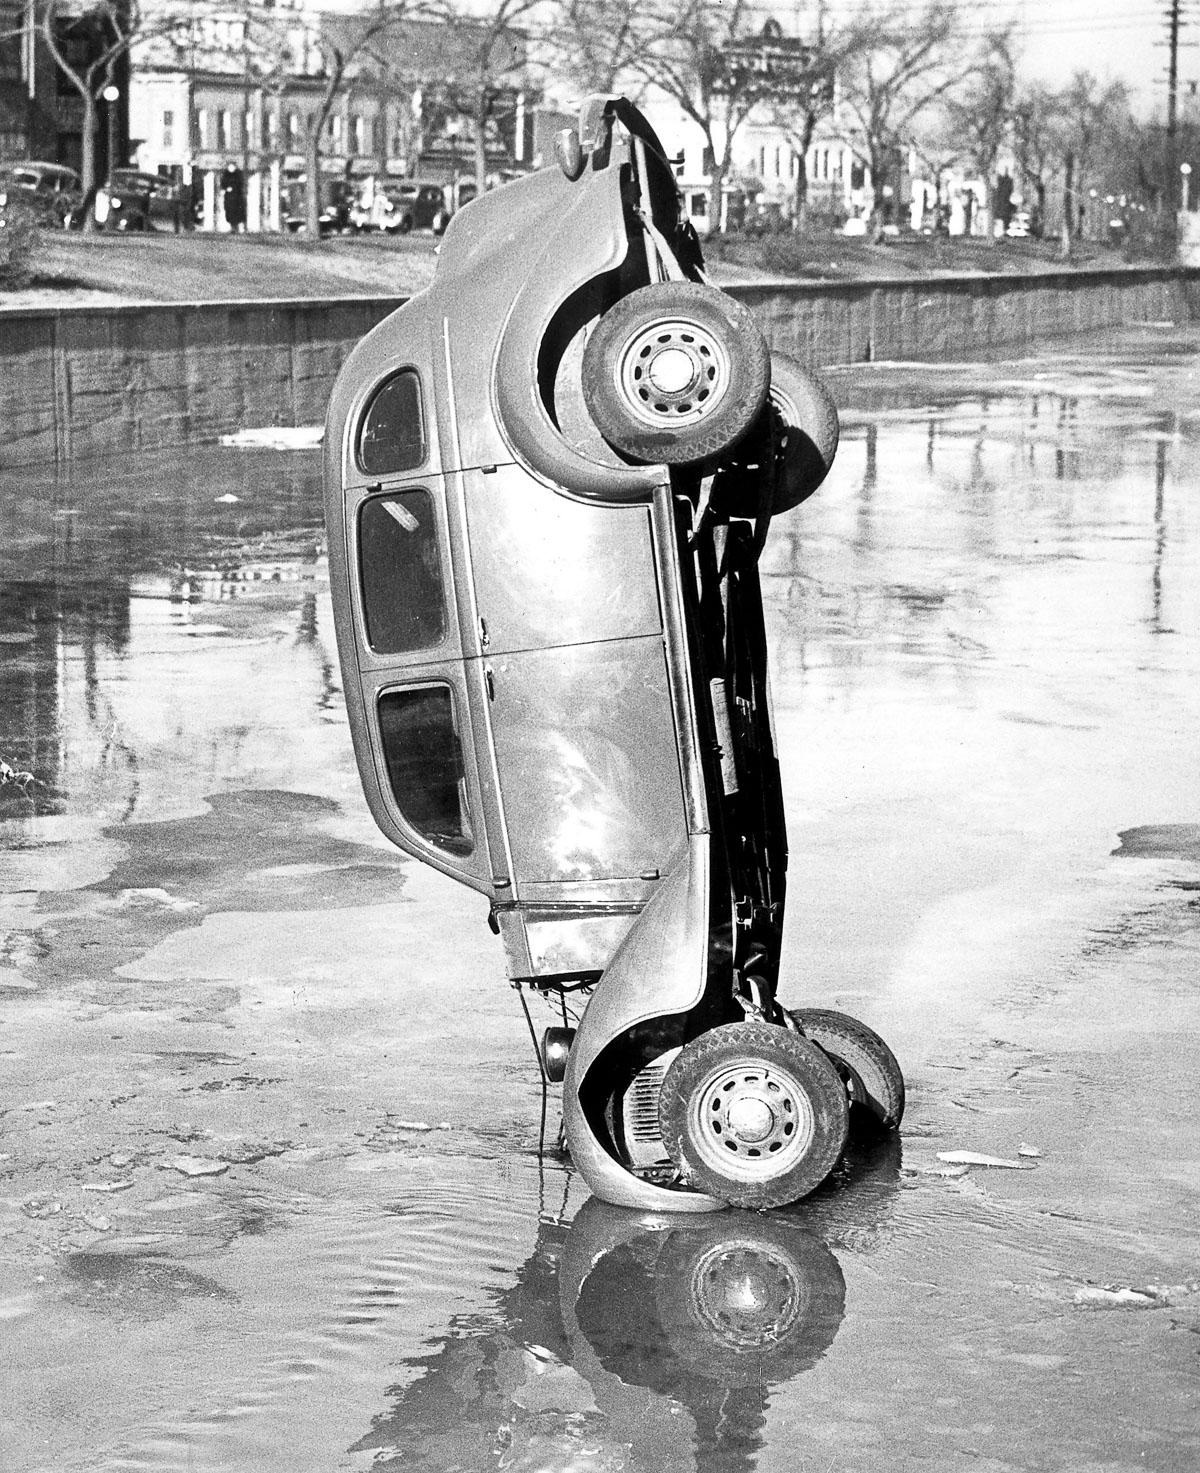 Traffic accidents A car turned on its front after a traffic accident - 1936 - Vintage property of ullstein bild